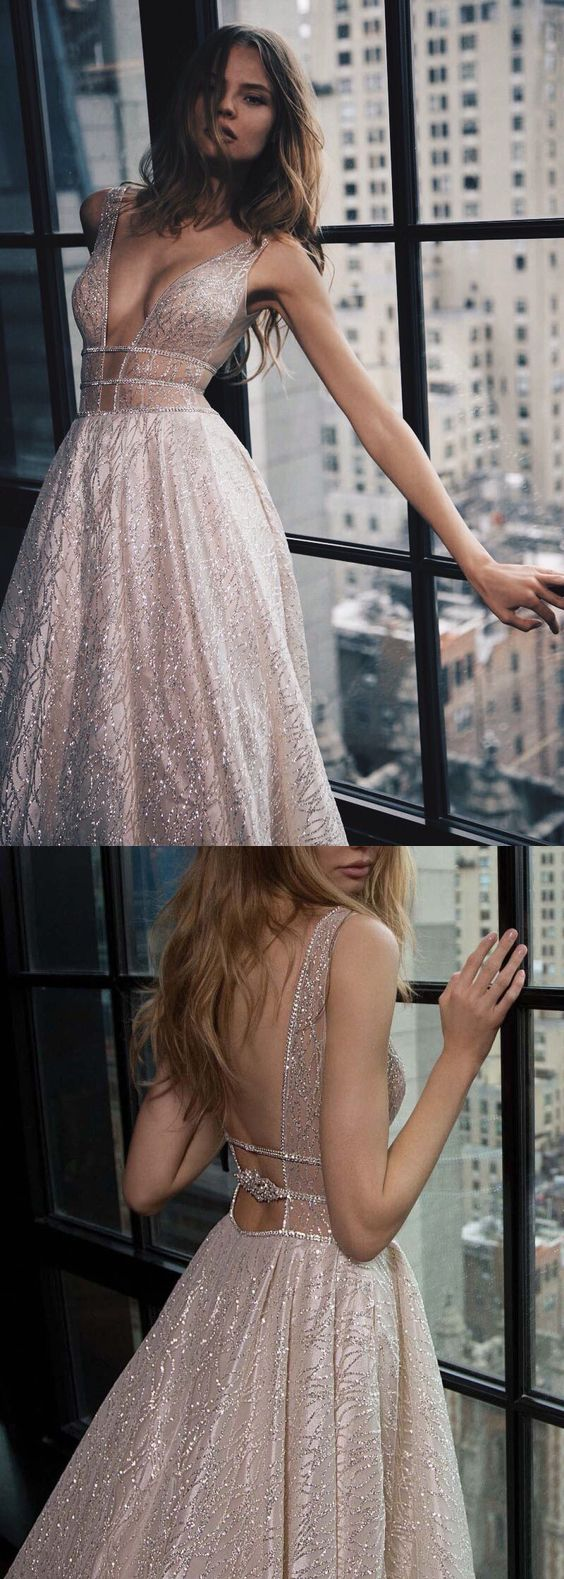 Deep V-Neck Sexy Prom Dresses, Luxury Court Train Pink Party Dress, Shiny Bride Dresses  Backless with Sequins